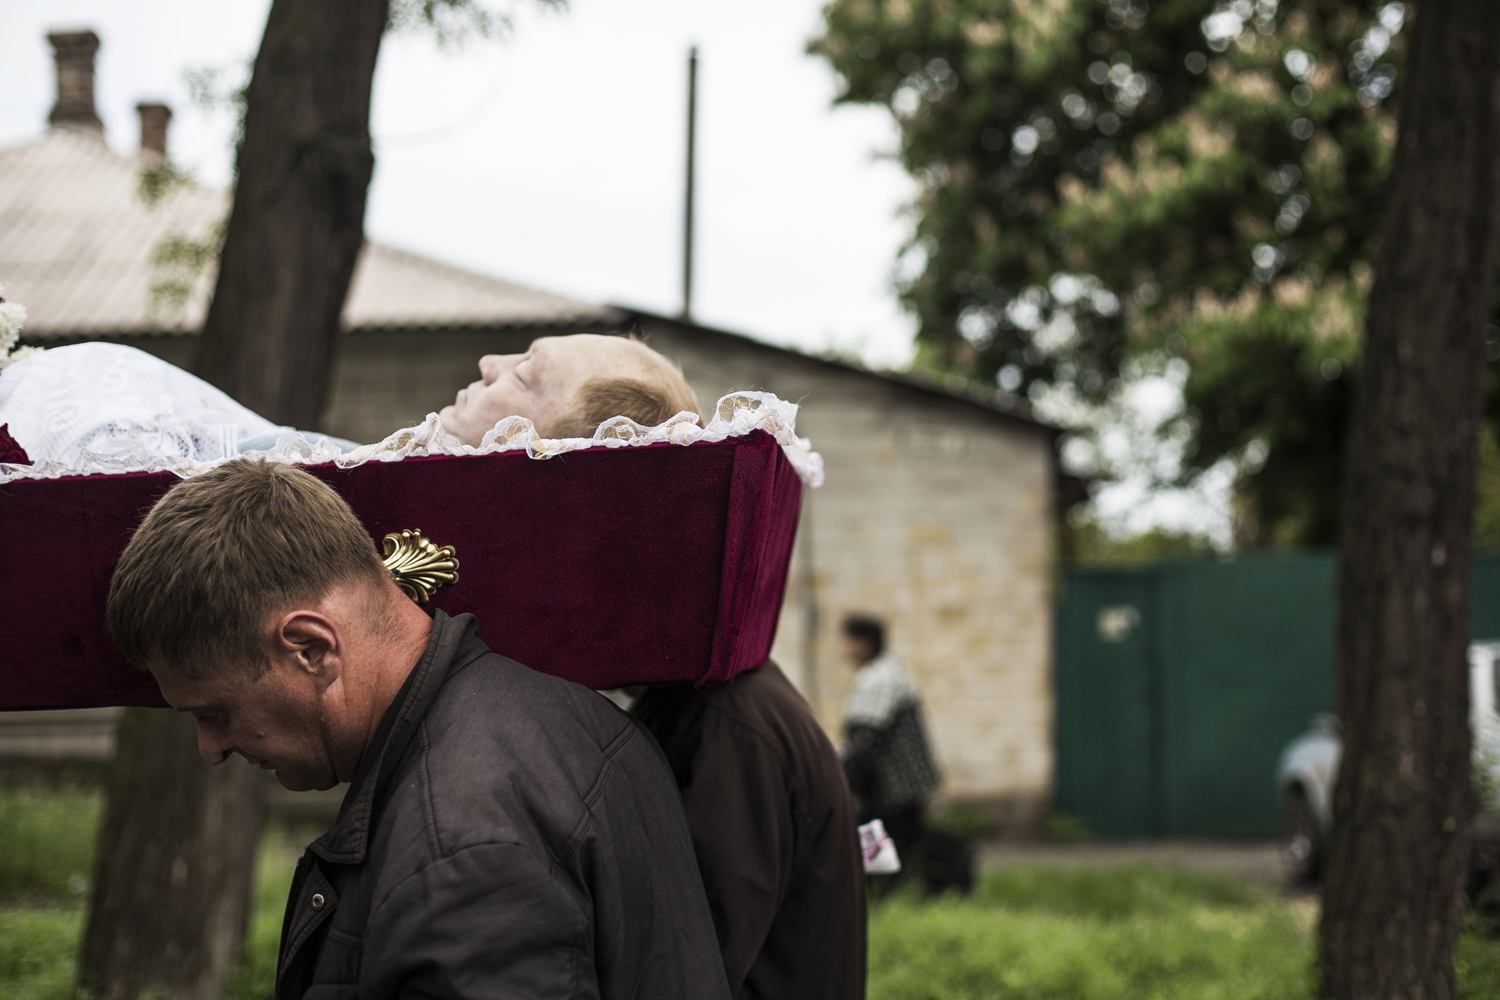 May 12, 2014. Mourners carry the coffin of Alexey Vorobyov, a civilian killed by Ukraine National Guard during an operation against pro Russian activist last Friday in Mariupol, during his funeral in Mariupol, Ukraine.